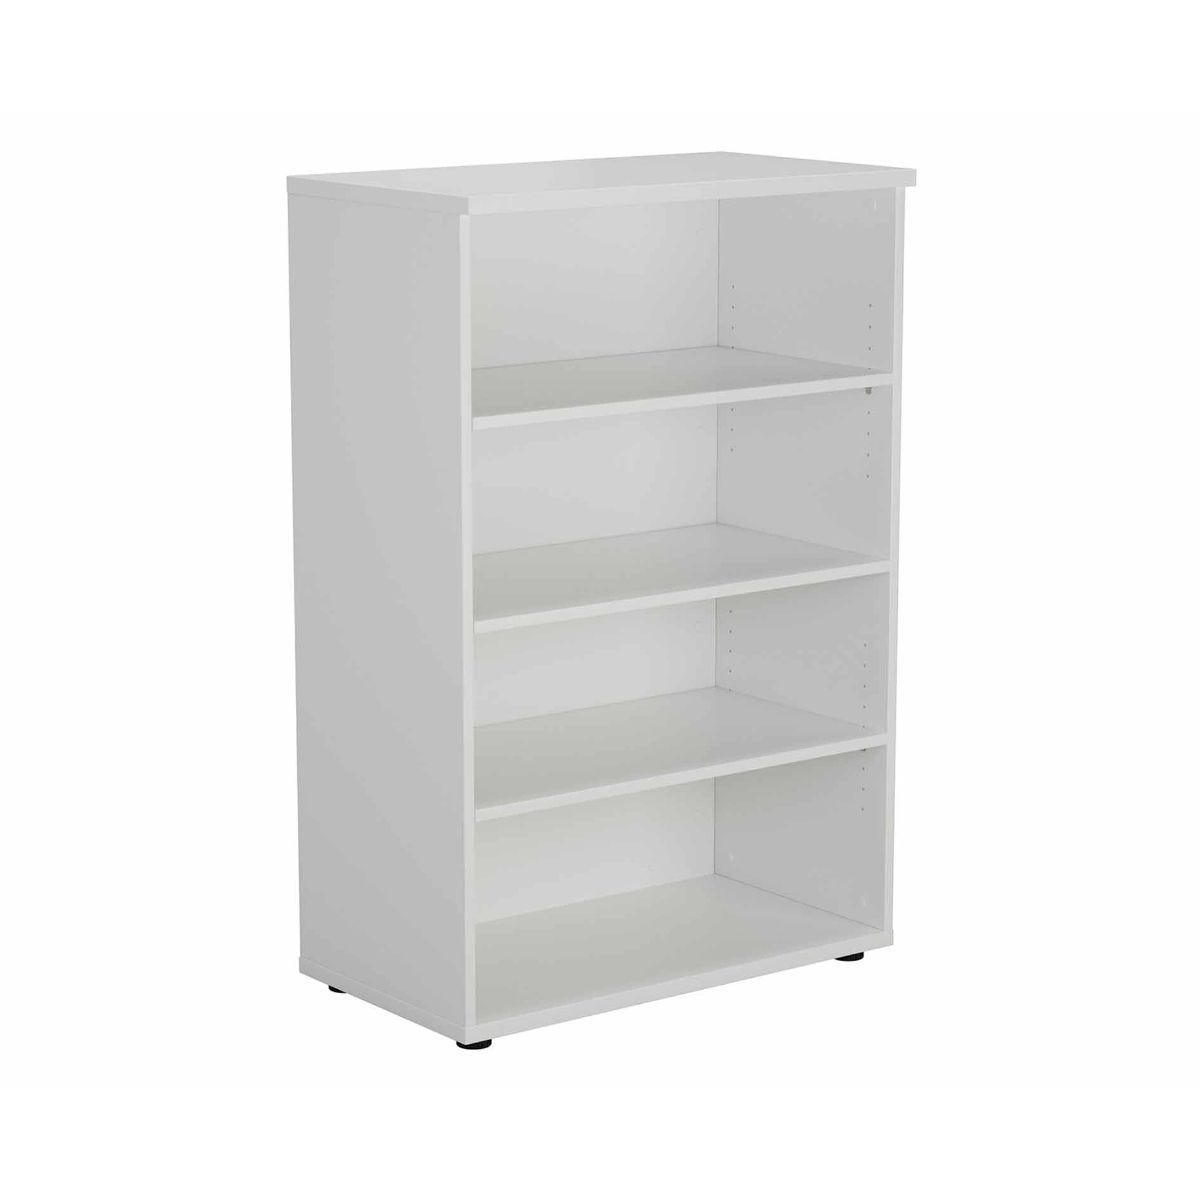 TC Office Bookcase with 3 Shelves Height 1200mm, White